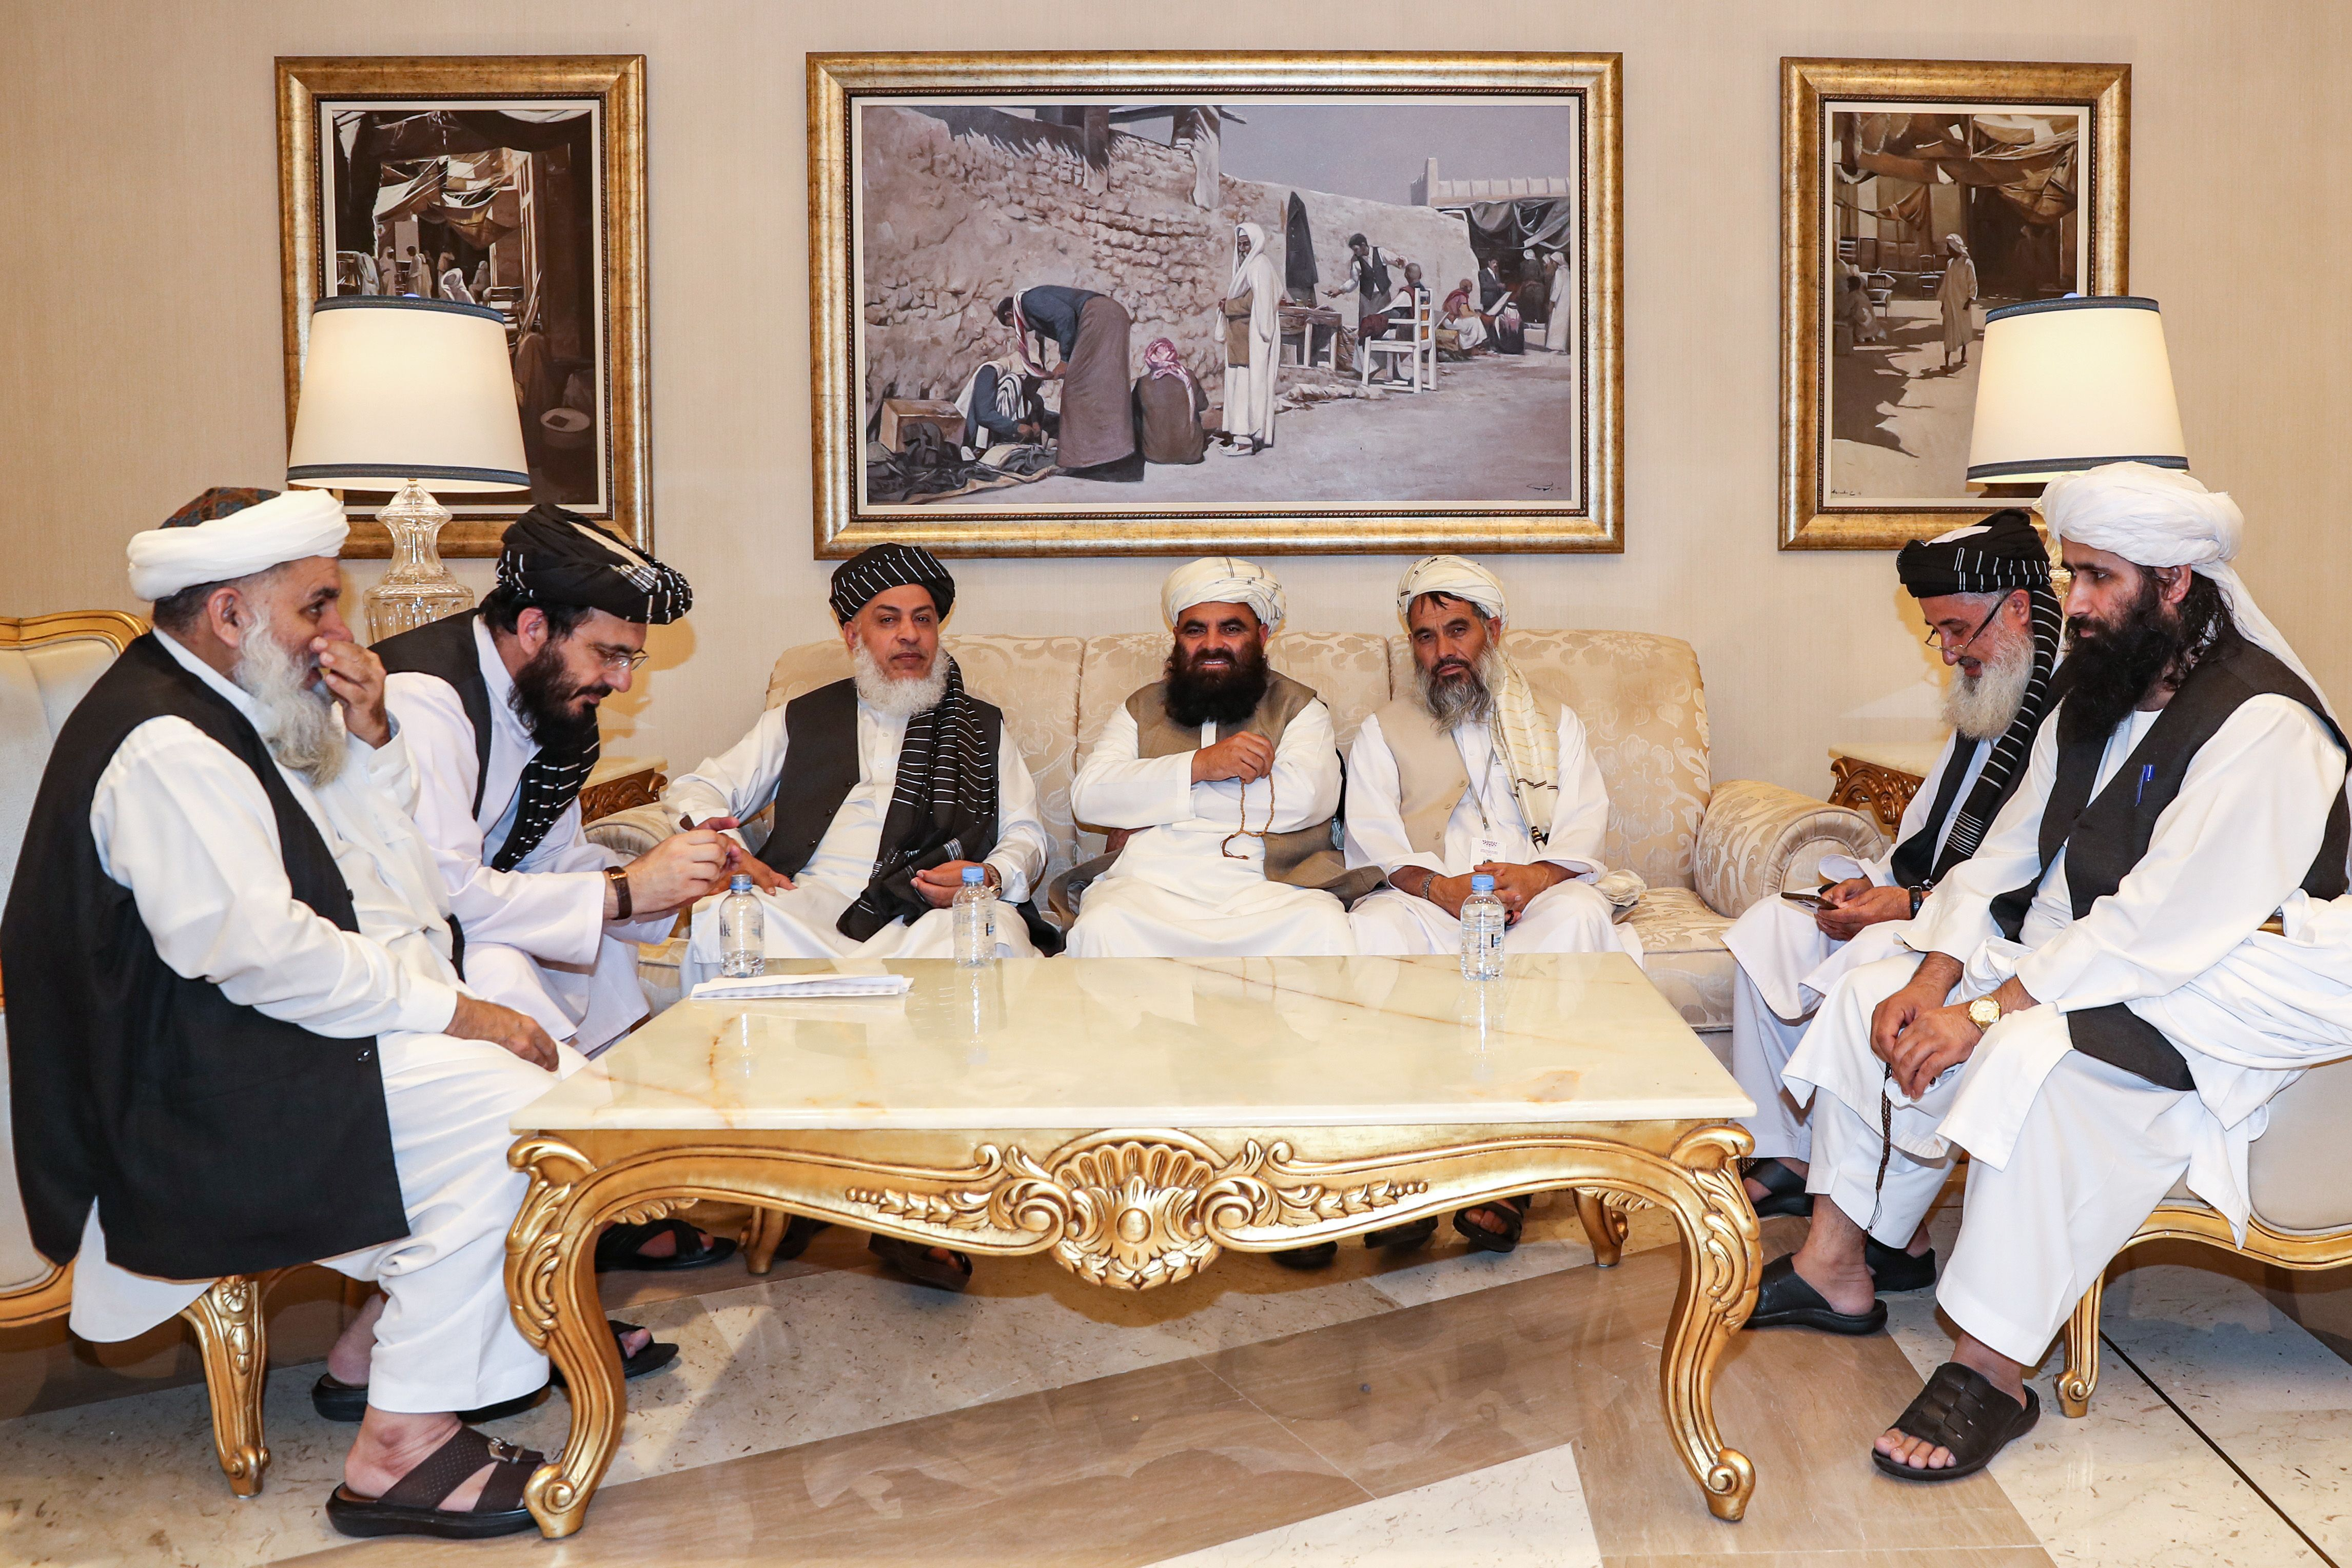 Mohammad Nabi Omari (2nd-L), a Taliban member formerly held by the US at Guantanamo Bay and reportedly released in 2014 in a prisoner exchange, and Taliban negotiator Abbas Stanikzai (3rd-L) sit with other Taliban members during the second day of the Intra Afghan Dialogue talks in the Qatari capital Doha on July 8, 2019. . (JAAFAR/AFP/Getty Images)